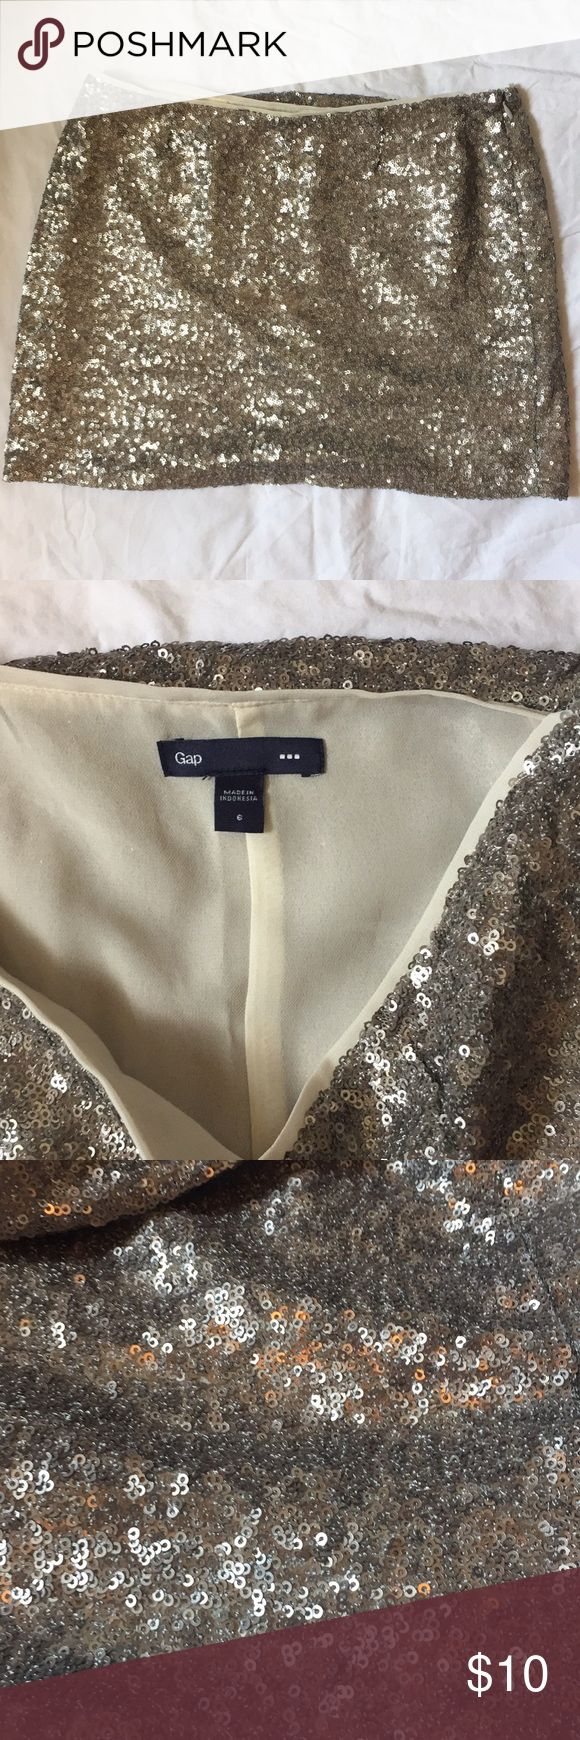 Gap silver sequin mini skirt. Size 6 This stunning sequin skirt is in excellent condition. No tears or marks. Perfect for holiday parties. GAP Skirts Mini